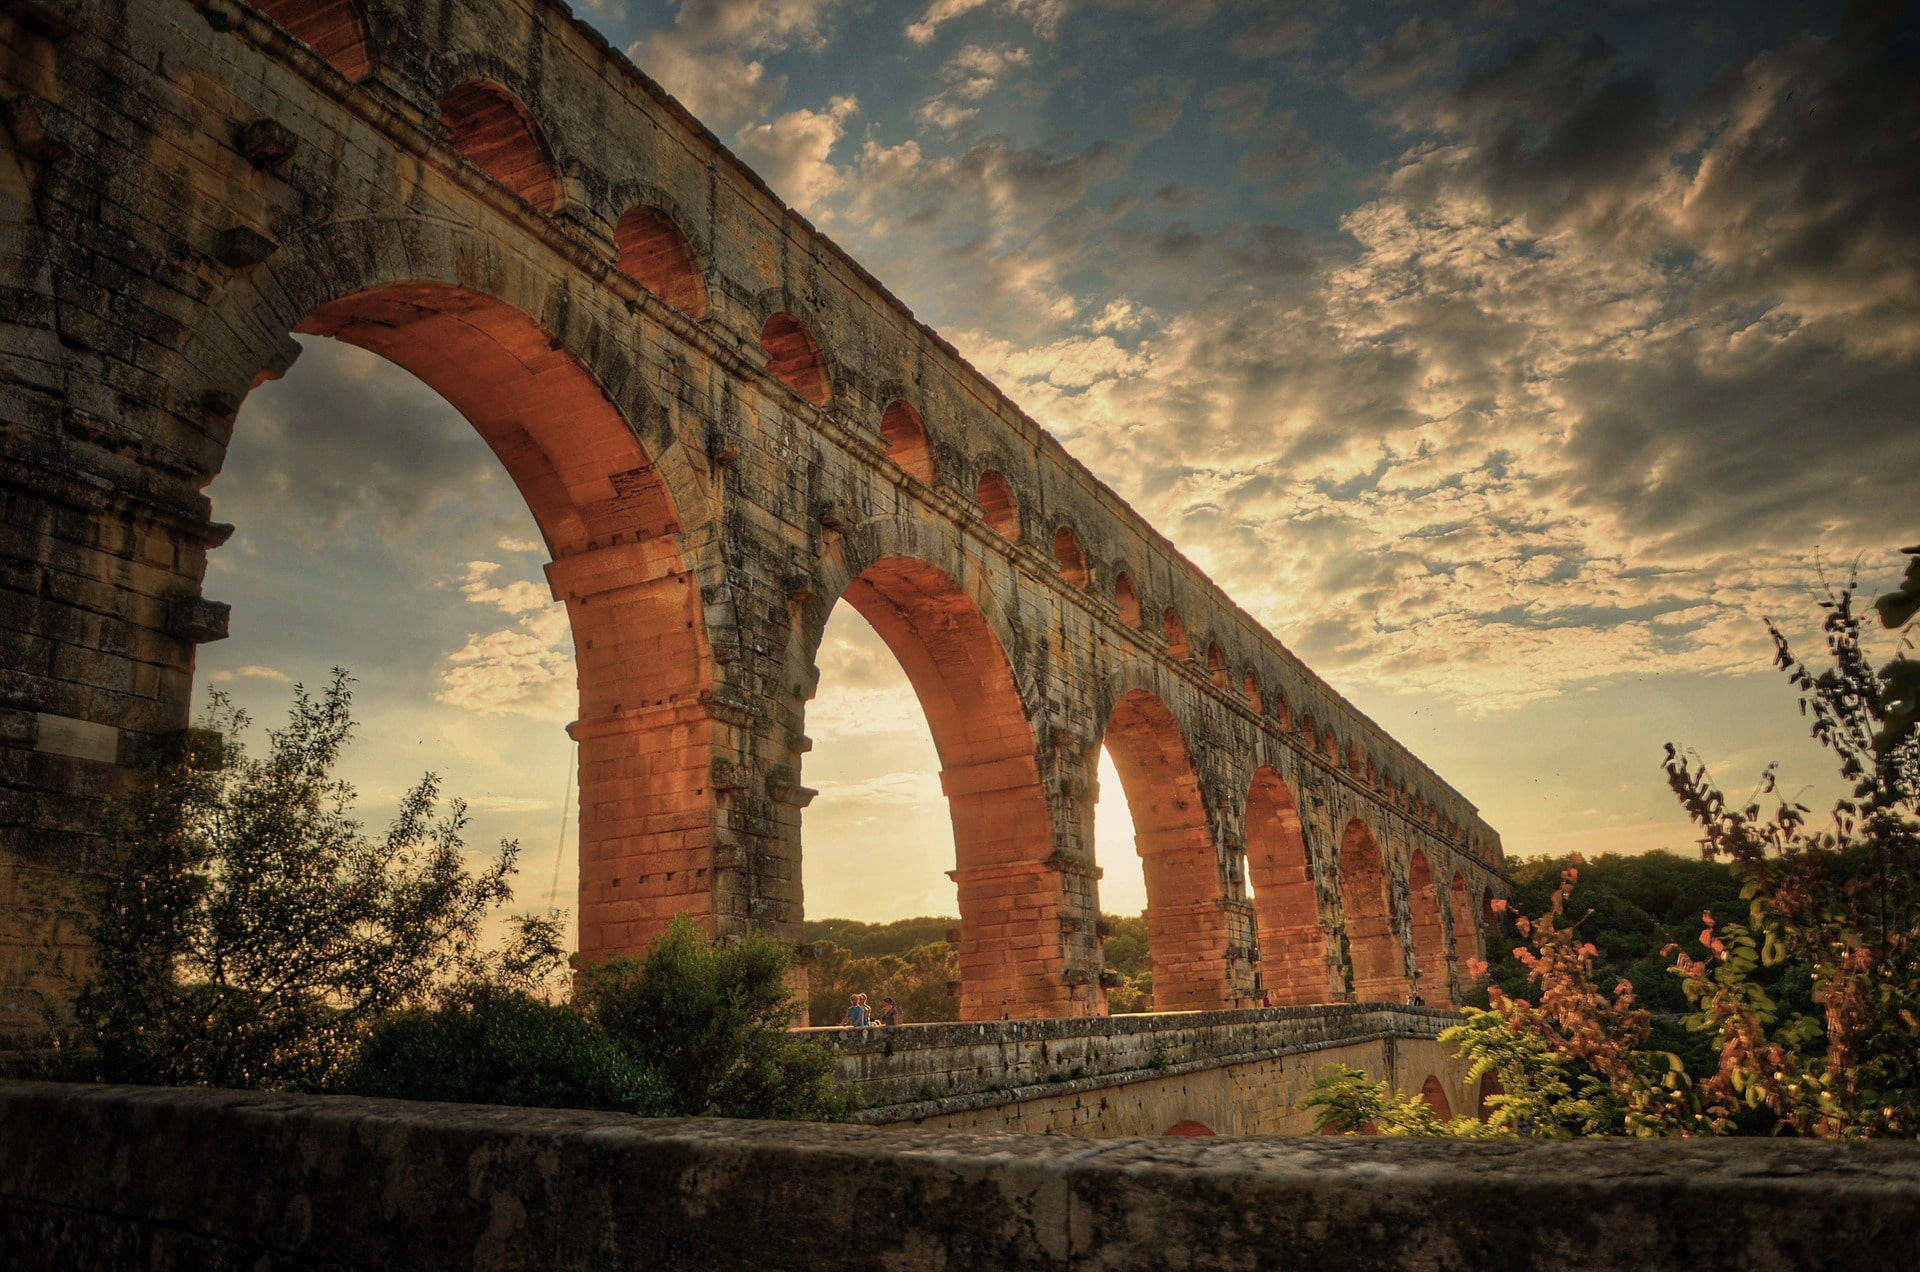 Pont Du Garde is one of the most amazing places to visit in France